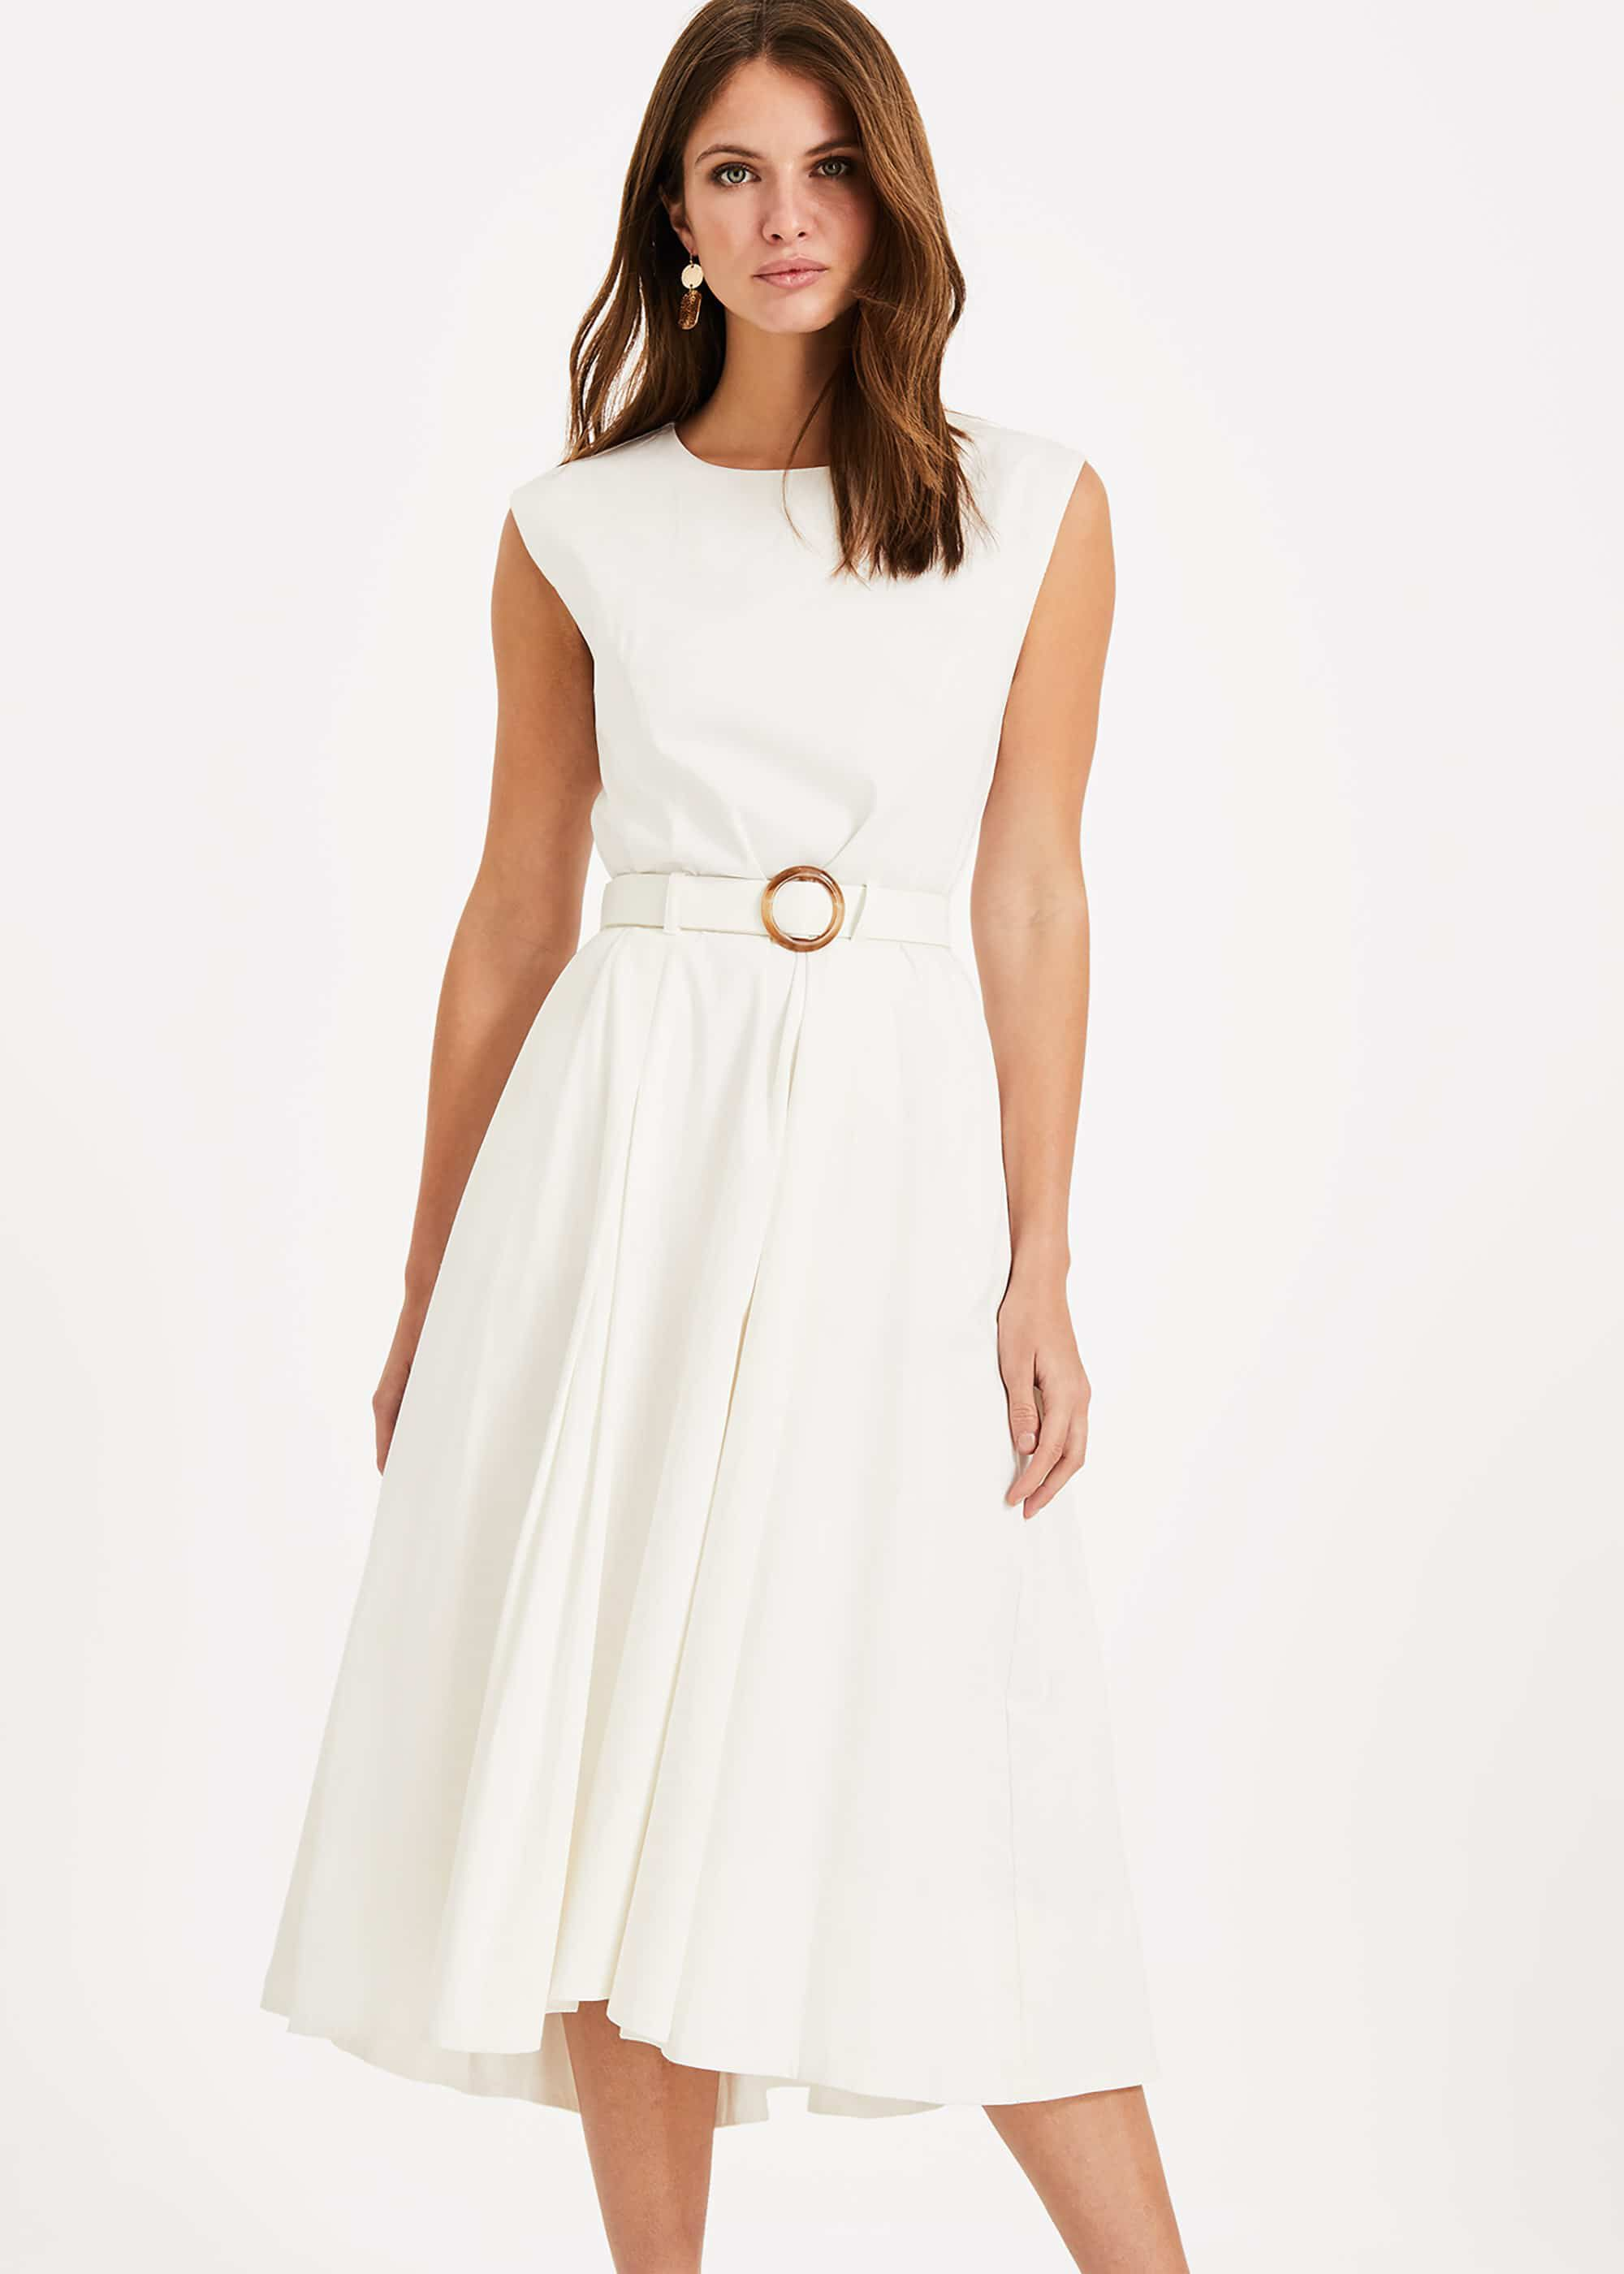 Phase Eight Mariella Belted Dress, Cream, Fit & Flare